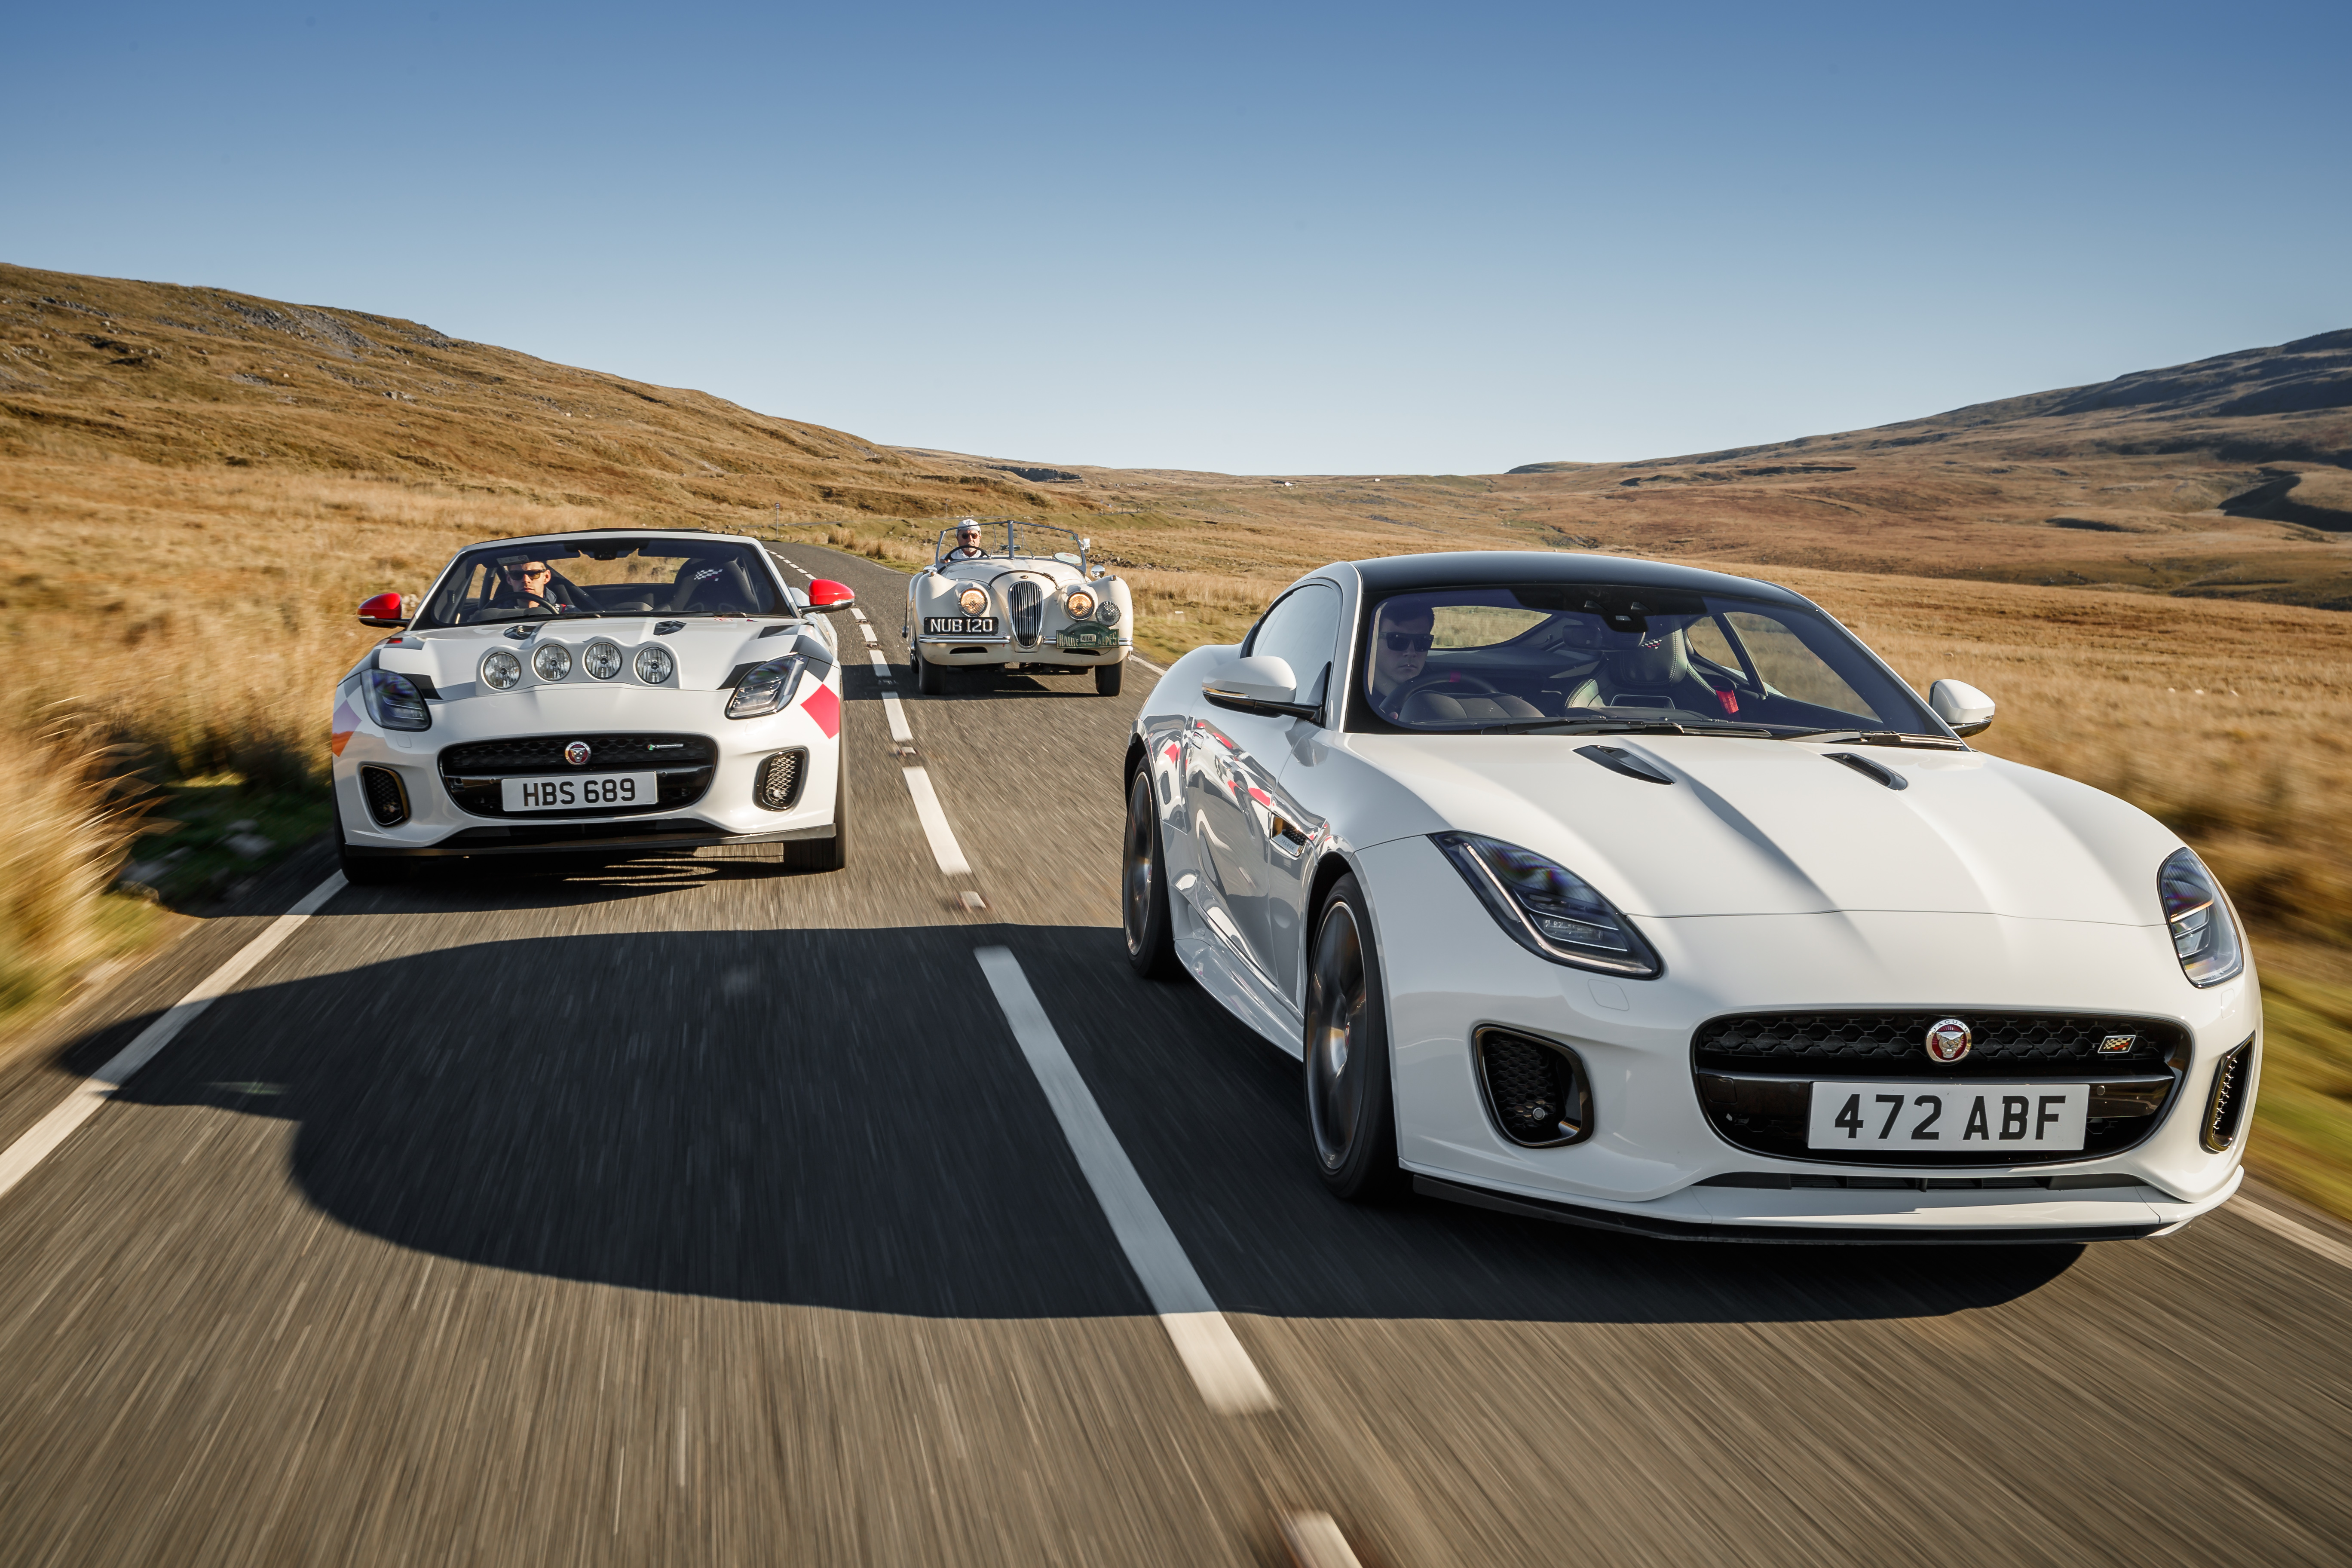 Jaguar F Type Rally Cars Celebrate 70 Years Of Sports Car Heritage